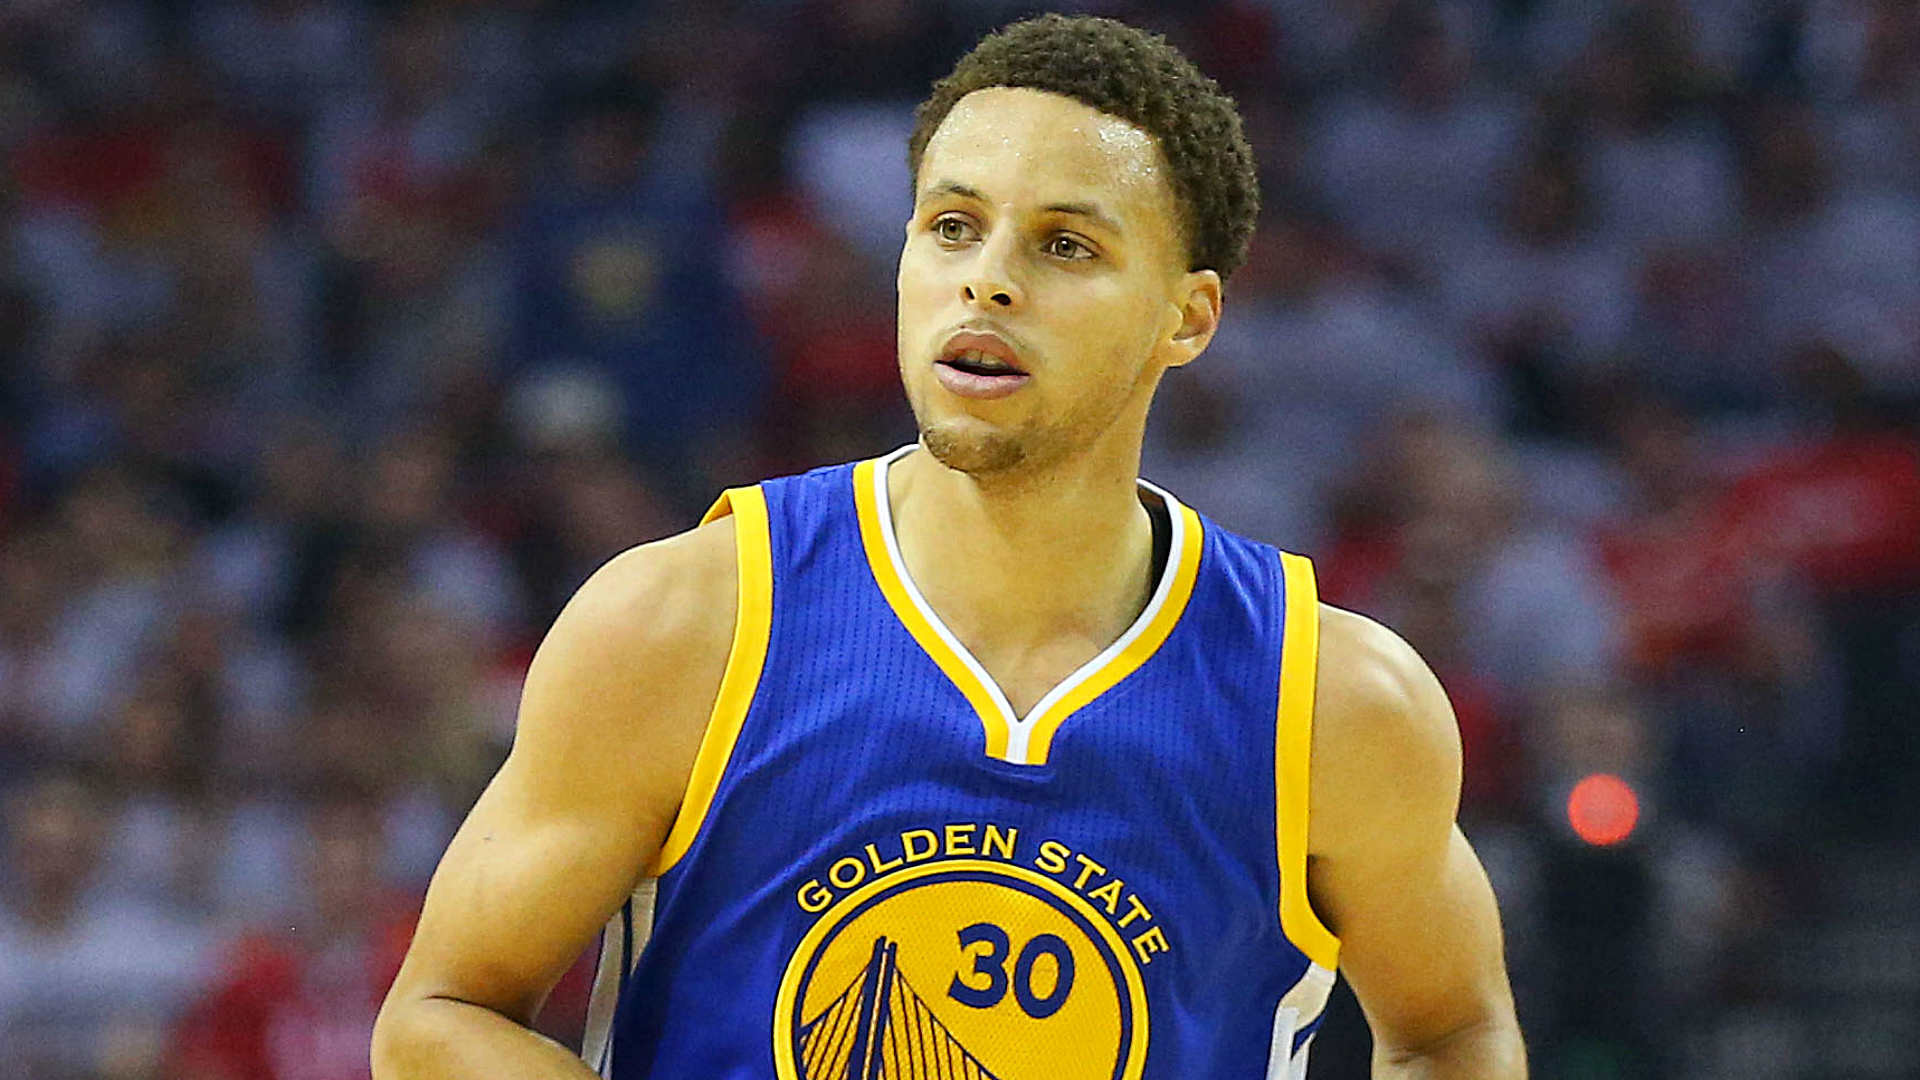 Stephen Curry HD Wallpaper. Stephen Curry Background